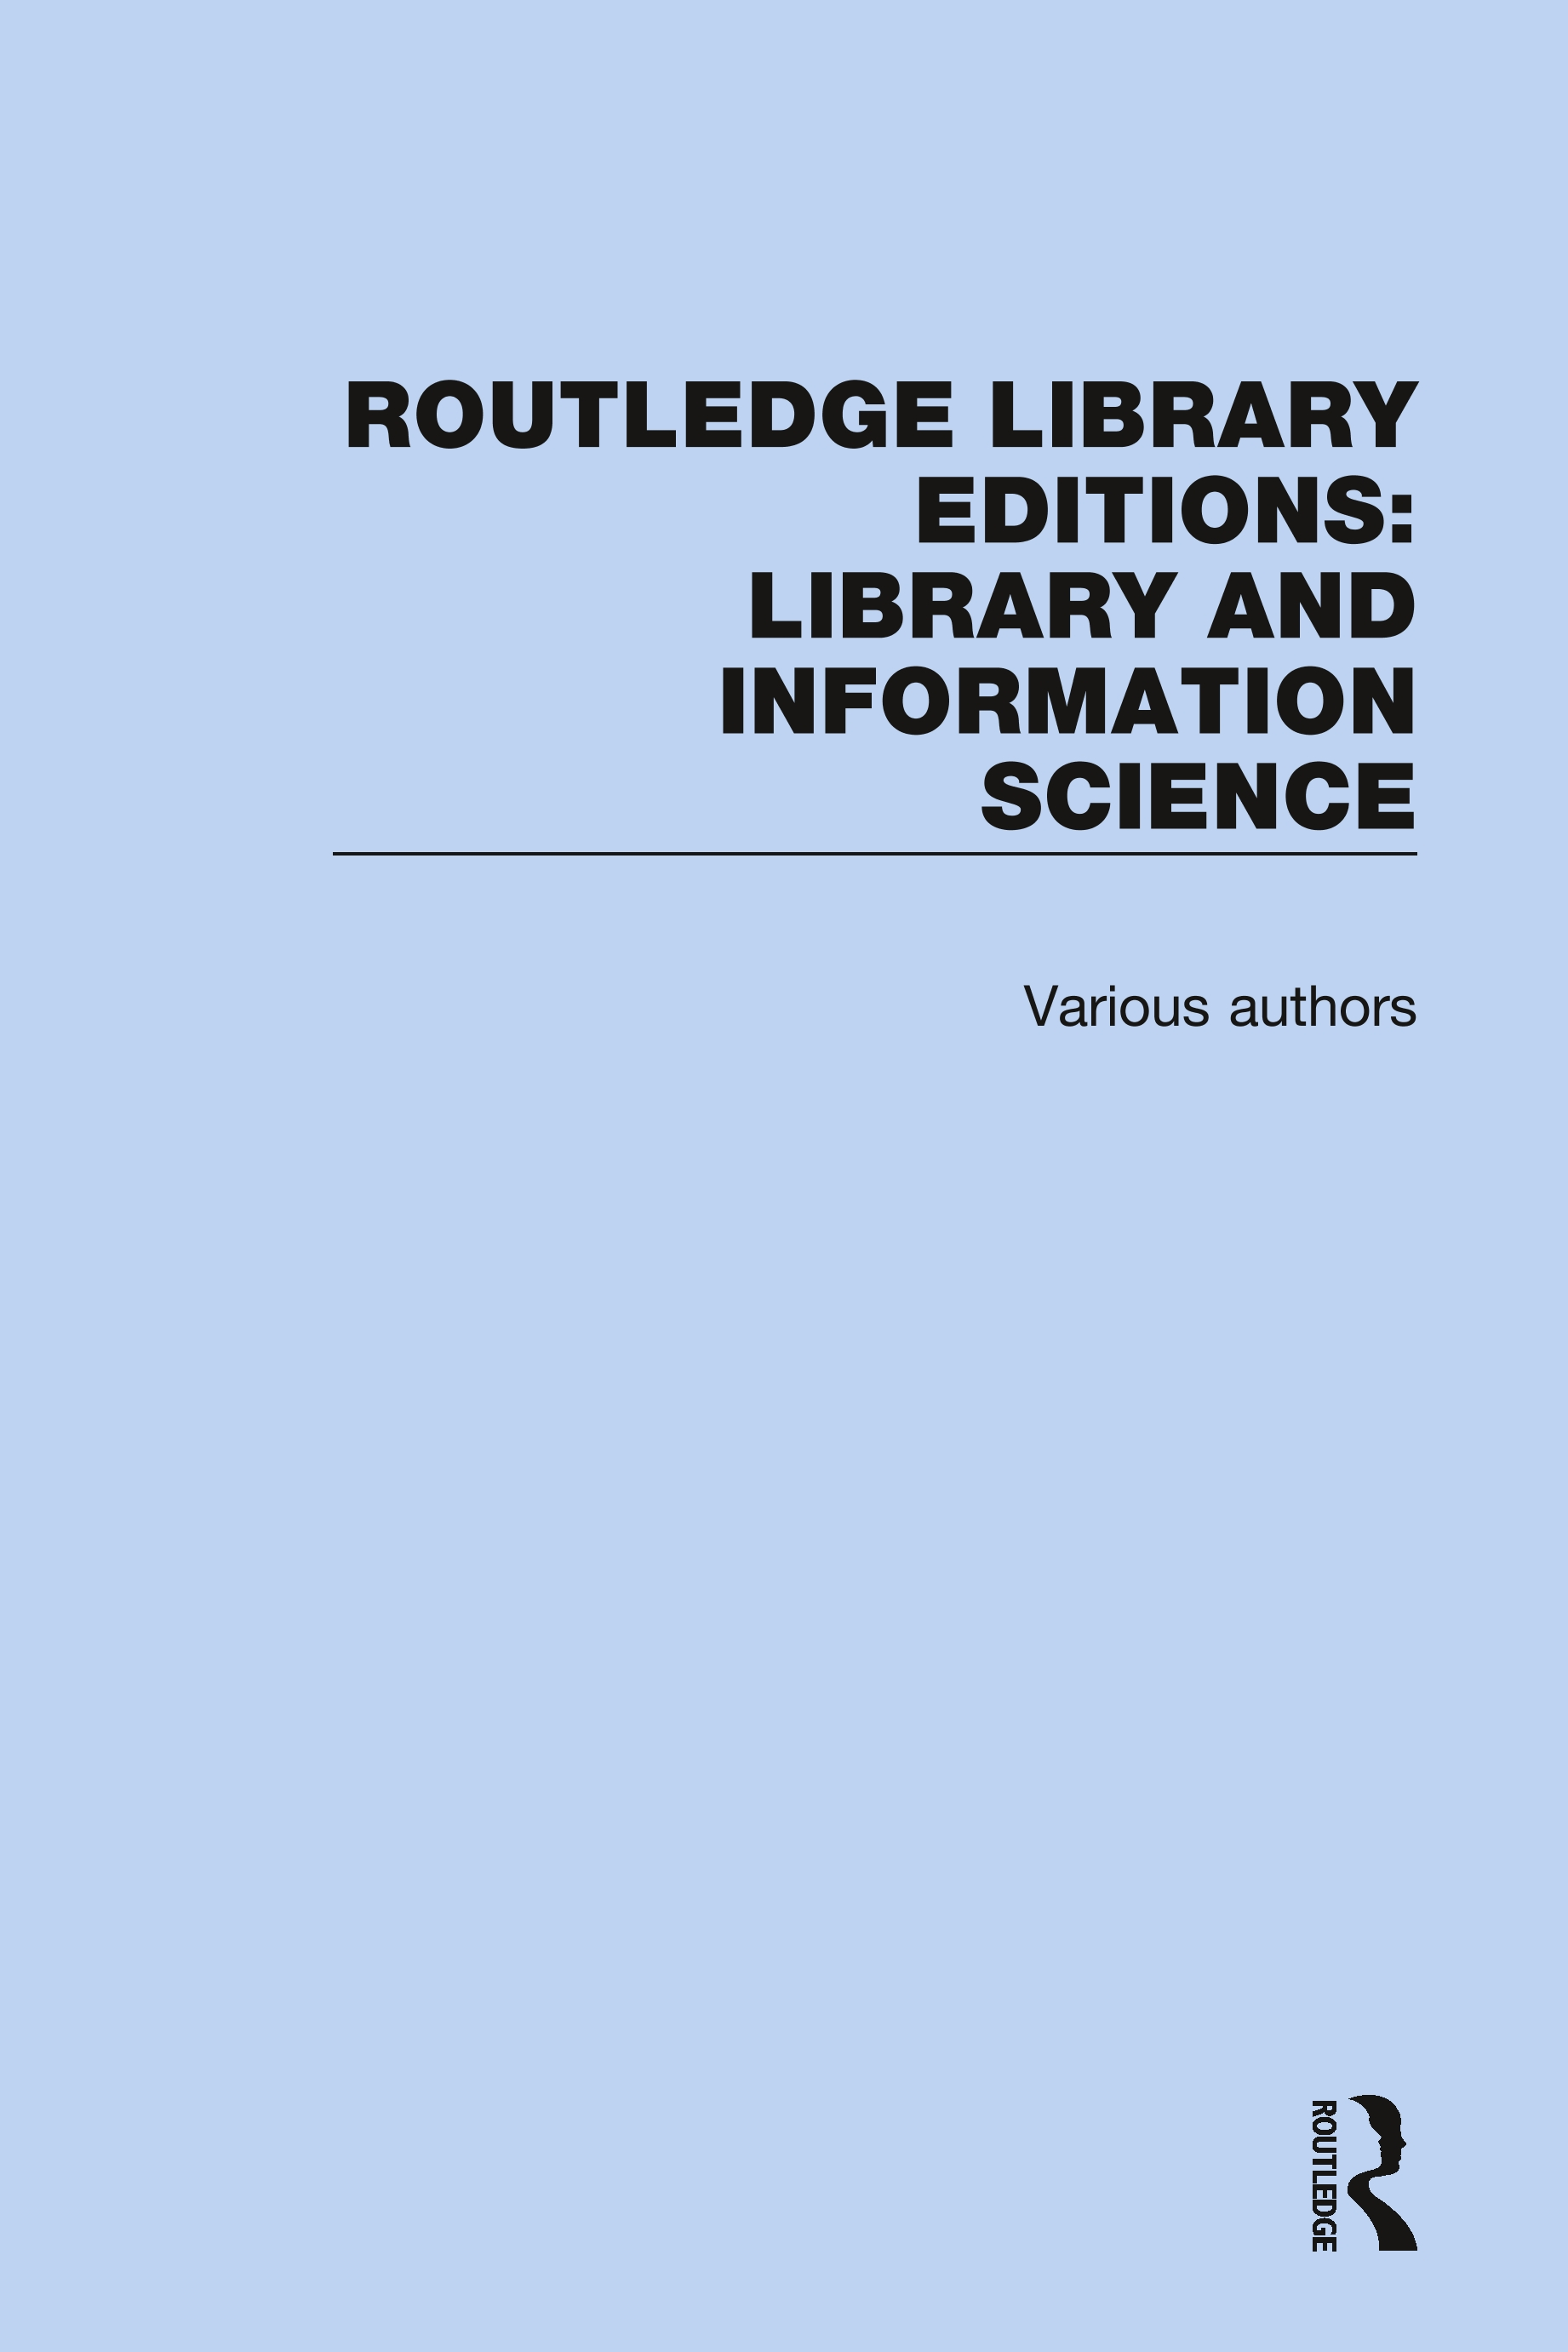 Routledge Library Editions: Library and Information Science: 1st Edition (Hardback) book cover